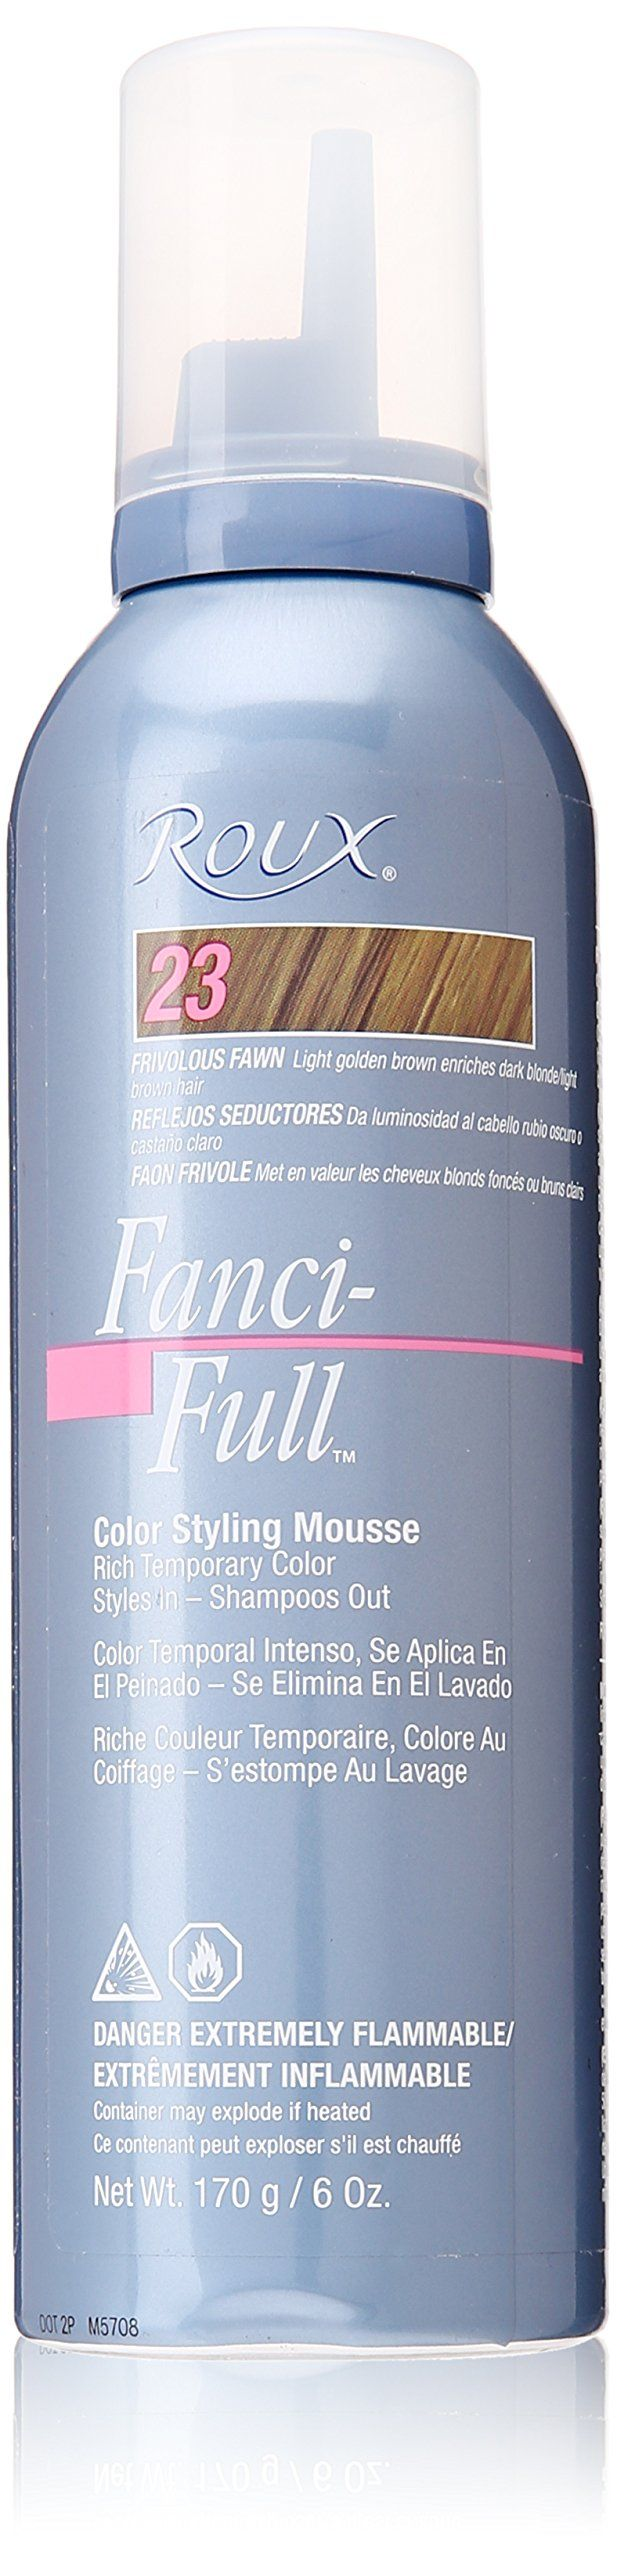 Roux Fanci-Full Mousse, 23 Frivolous Fawn, 6 Fluid Ounce. Rich temporary color for light golden brown hair. Styles in and shampoos out. It keeps color looking its best between color treatments.